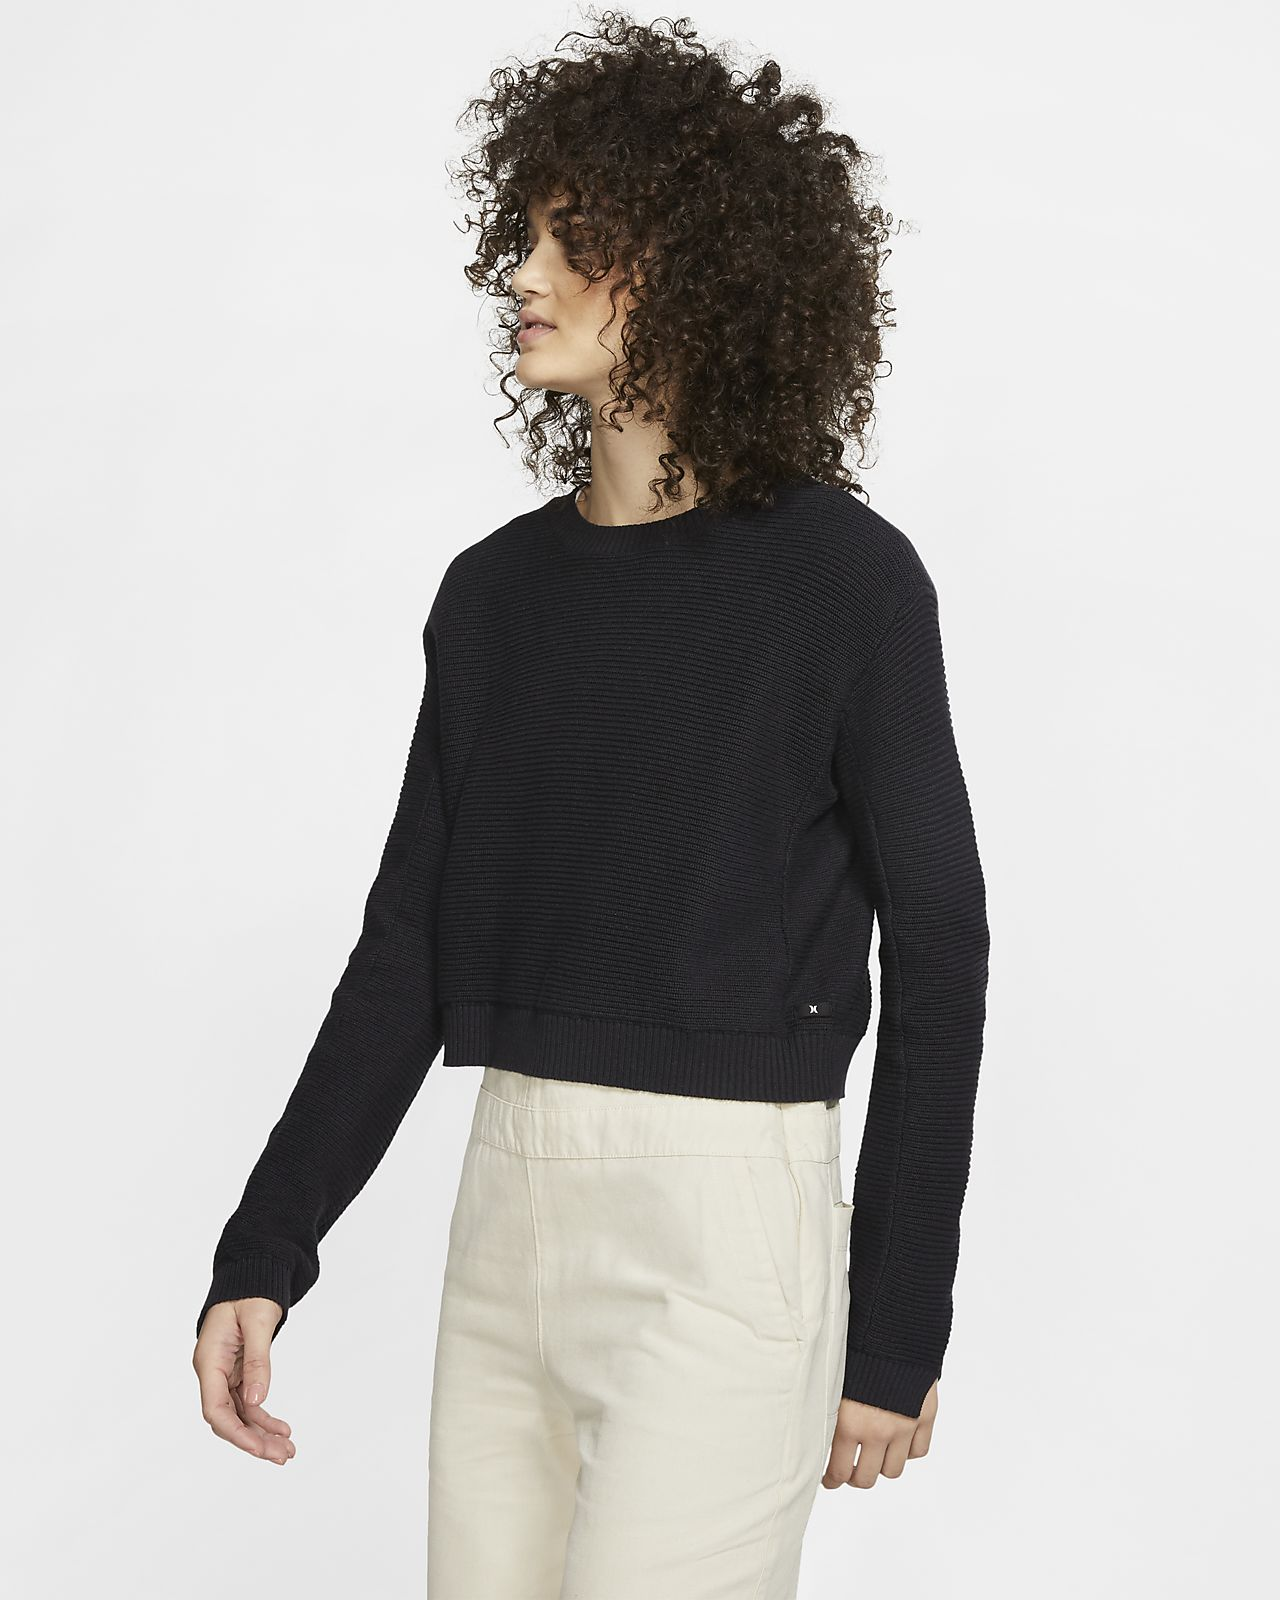 Hurley Sweater Weather Women's Jumper